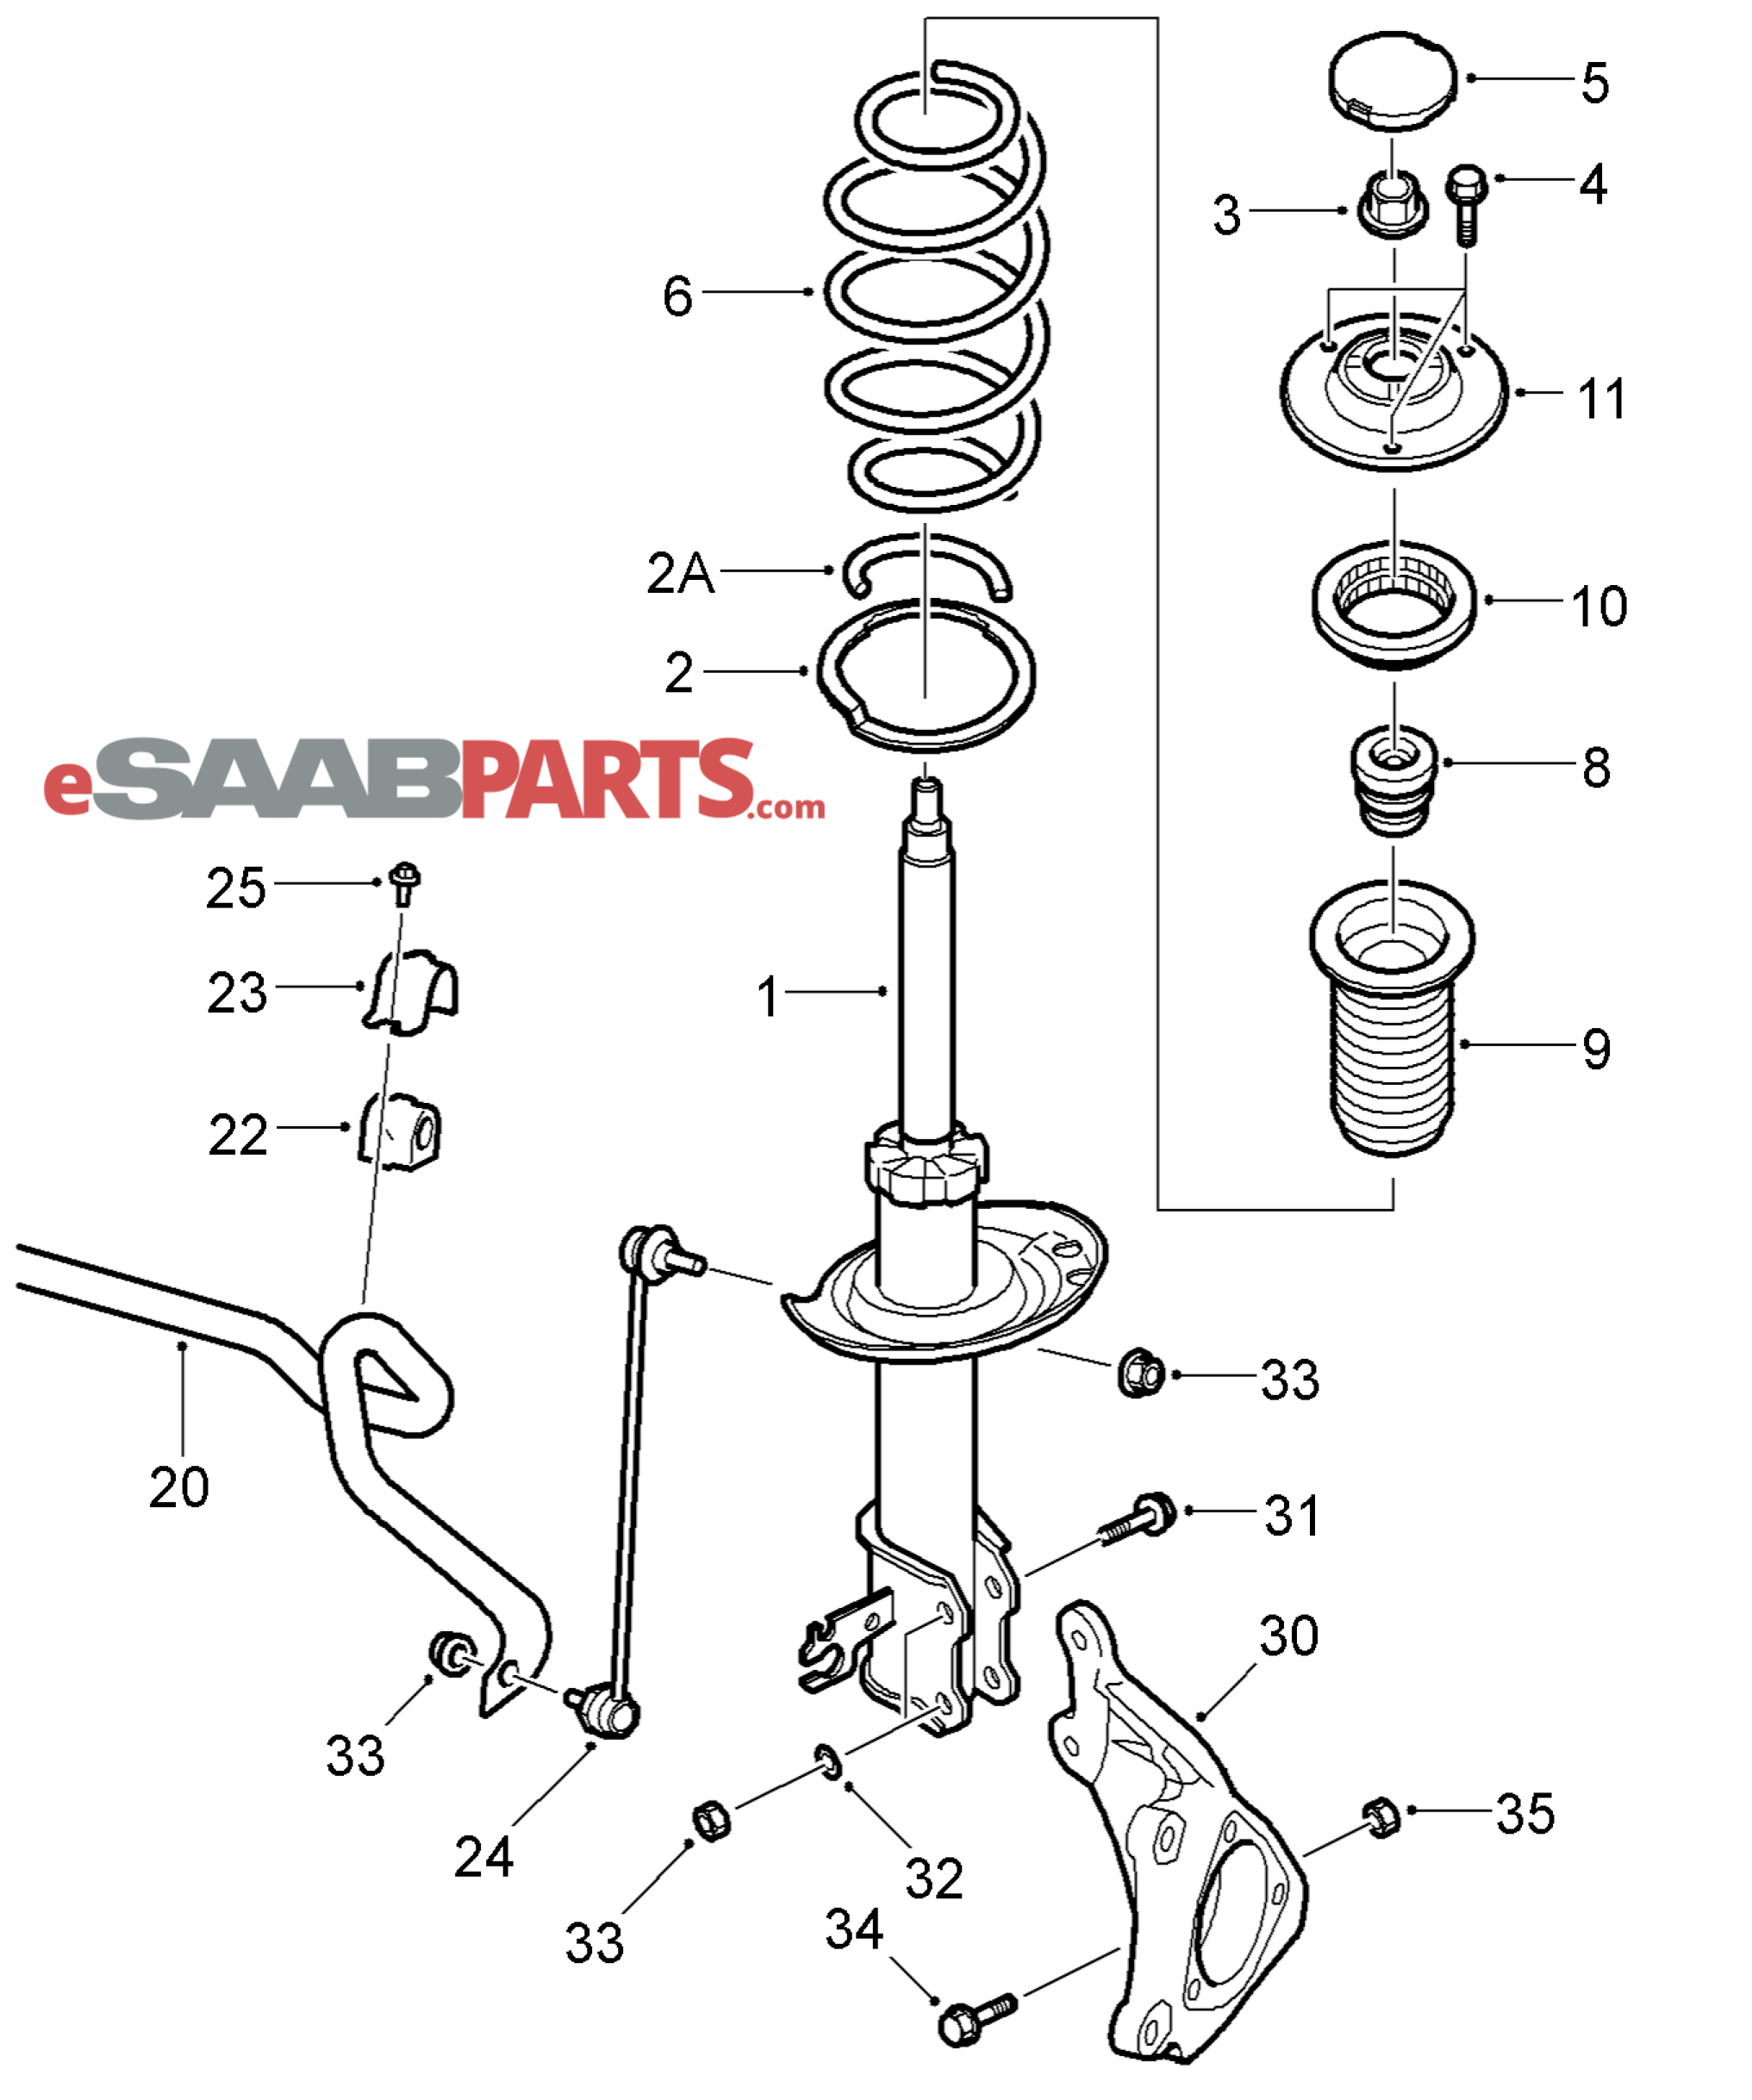 12794486 saab spacer leaf genuine saab parts from esaabparts com rh esaabparts com saab 93 front suspension diagram saab 900 front suspension diagram